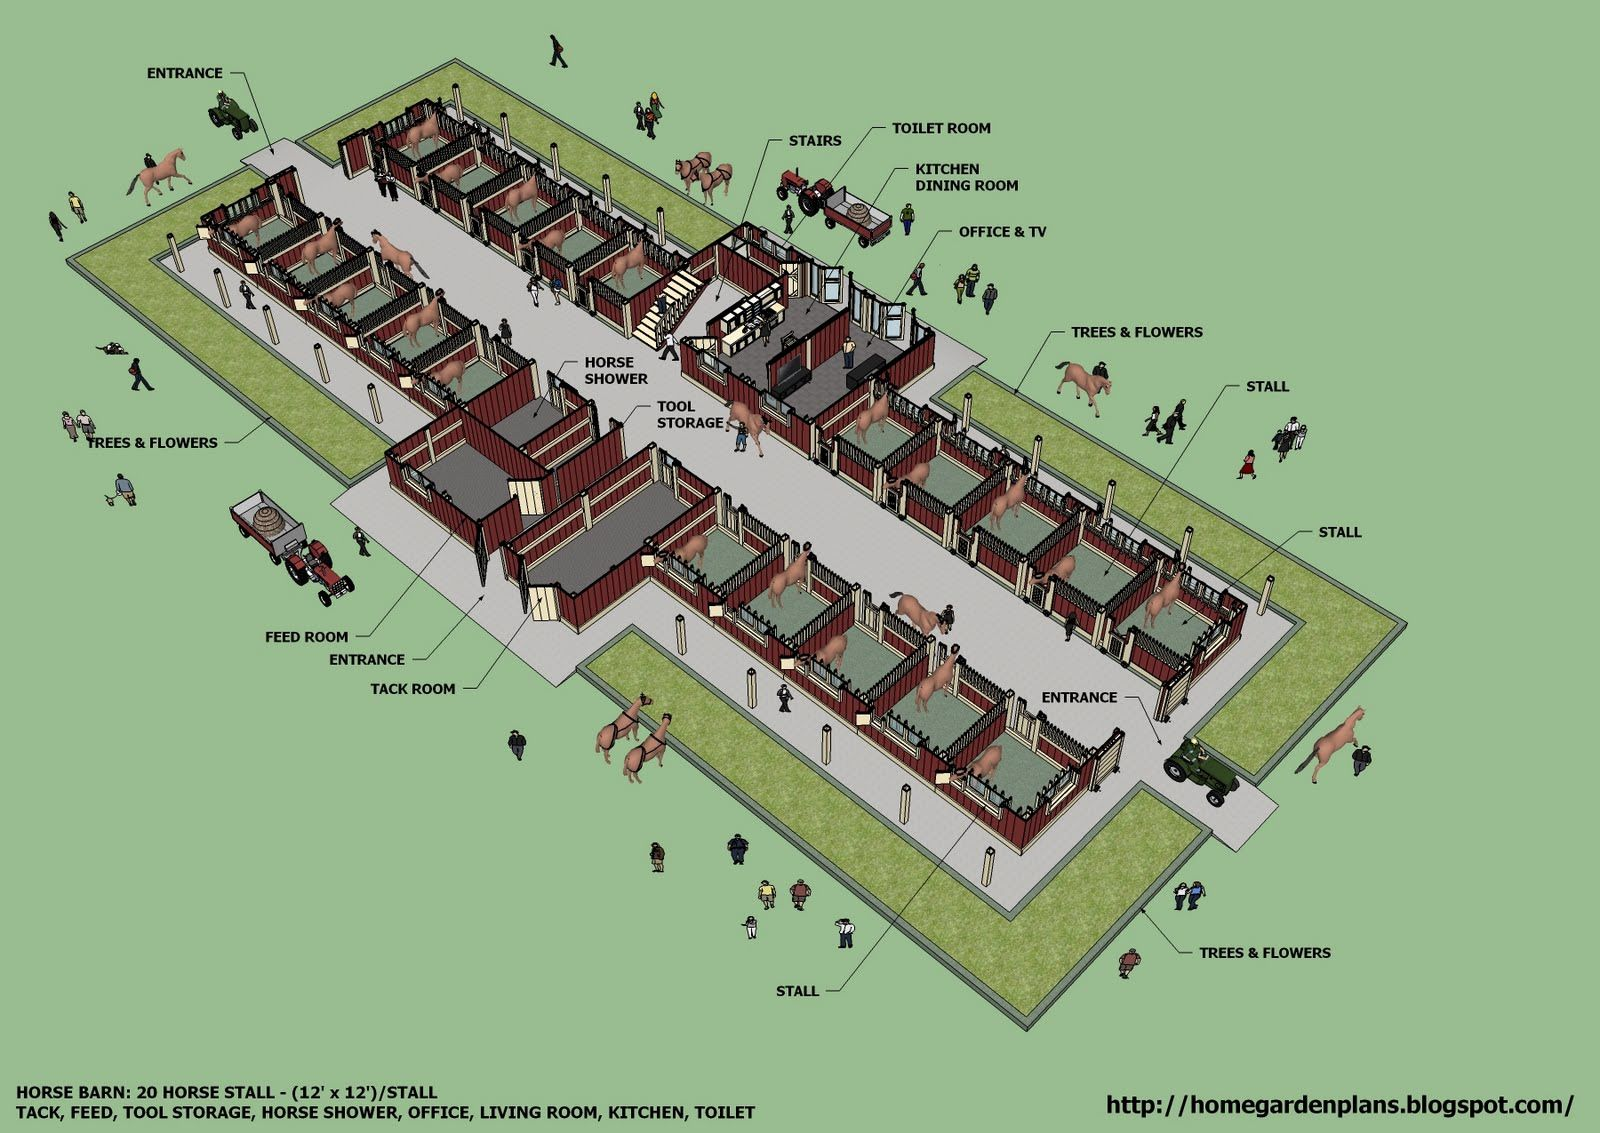 Home garden plans b20h large horse barn for 20 horse for Horse farm house plans